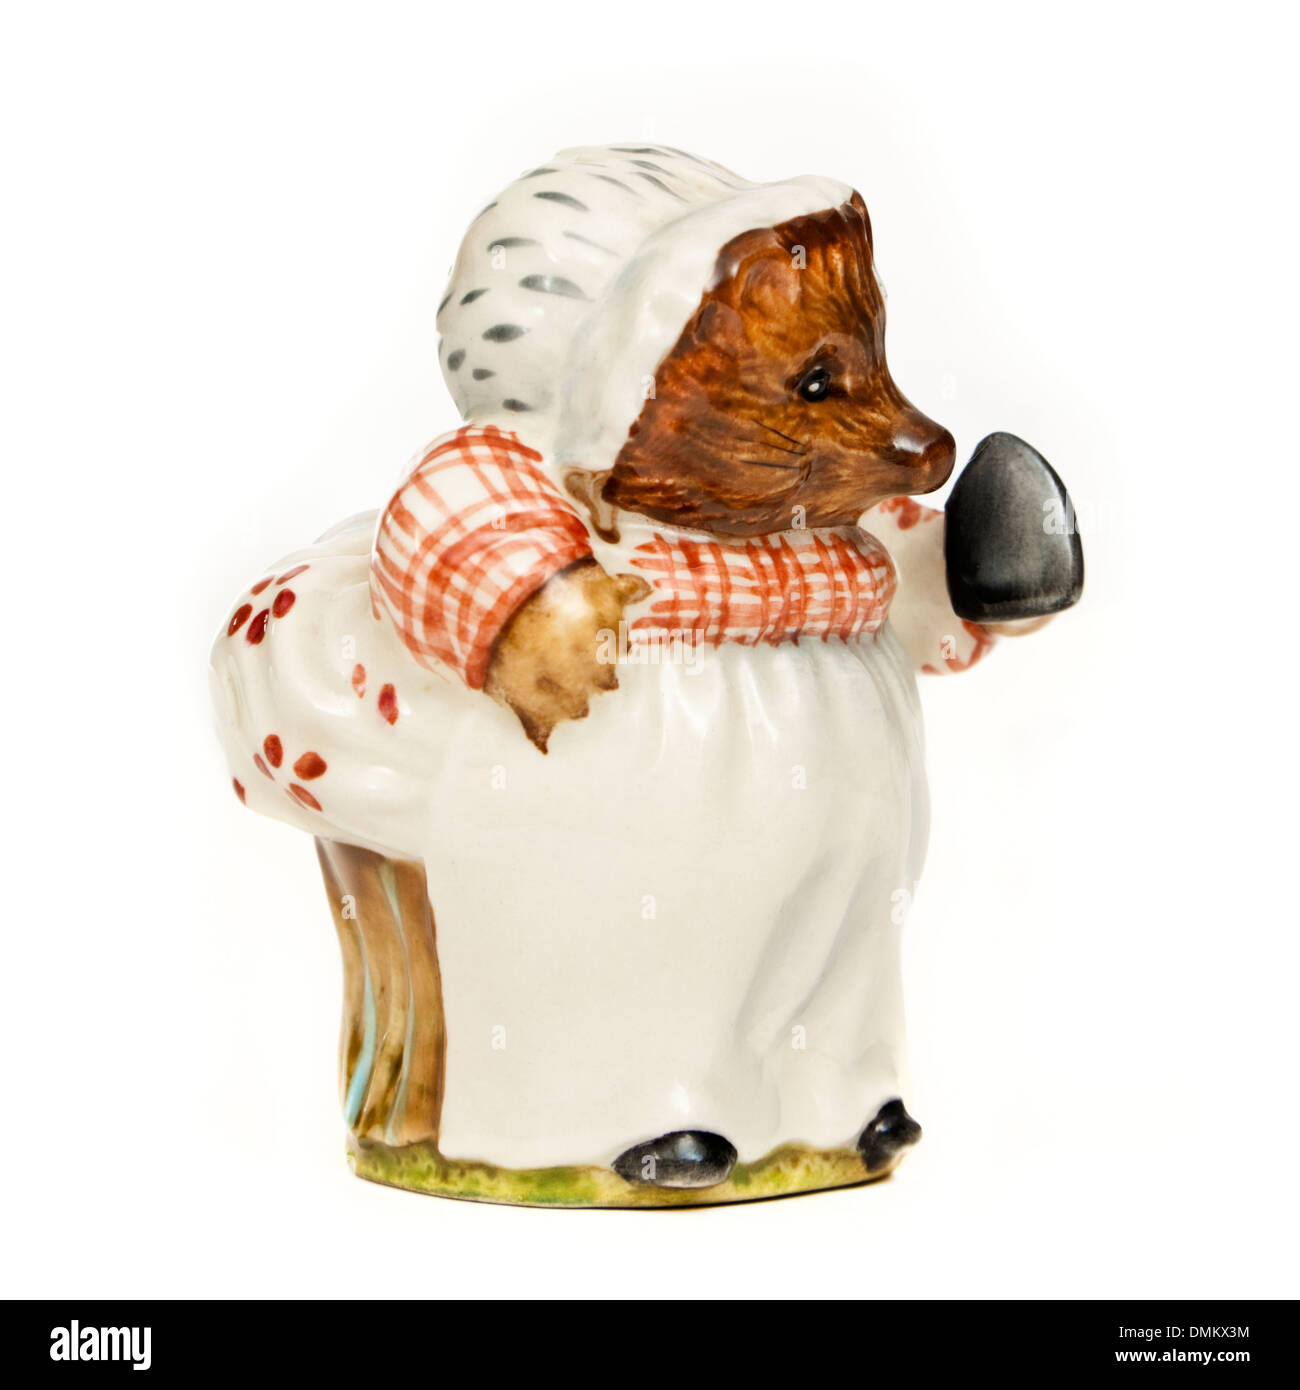 Vintage Beswick porcelain figure 'Mrs Tiggy Winkle' from the Beatrix Potter series (1970-1982 period) - Stock Image